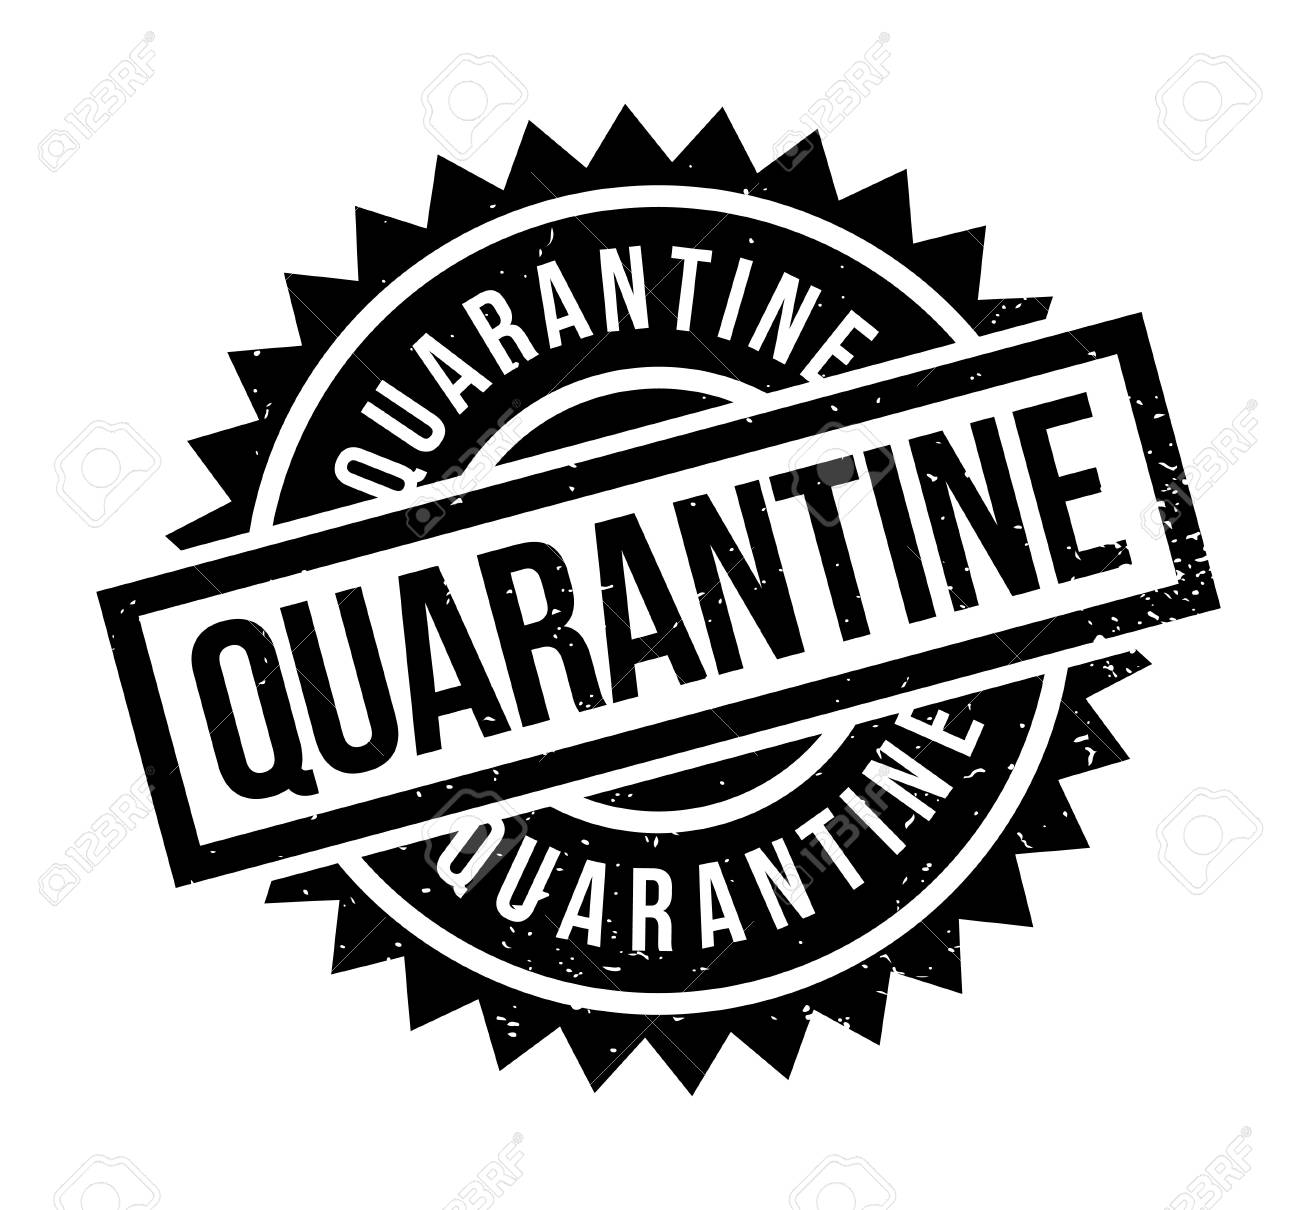 Quarantine Rubber Stamp Grunge Design With Dust Scratches Effects